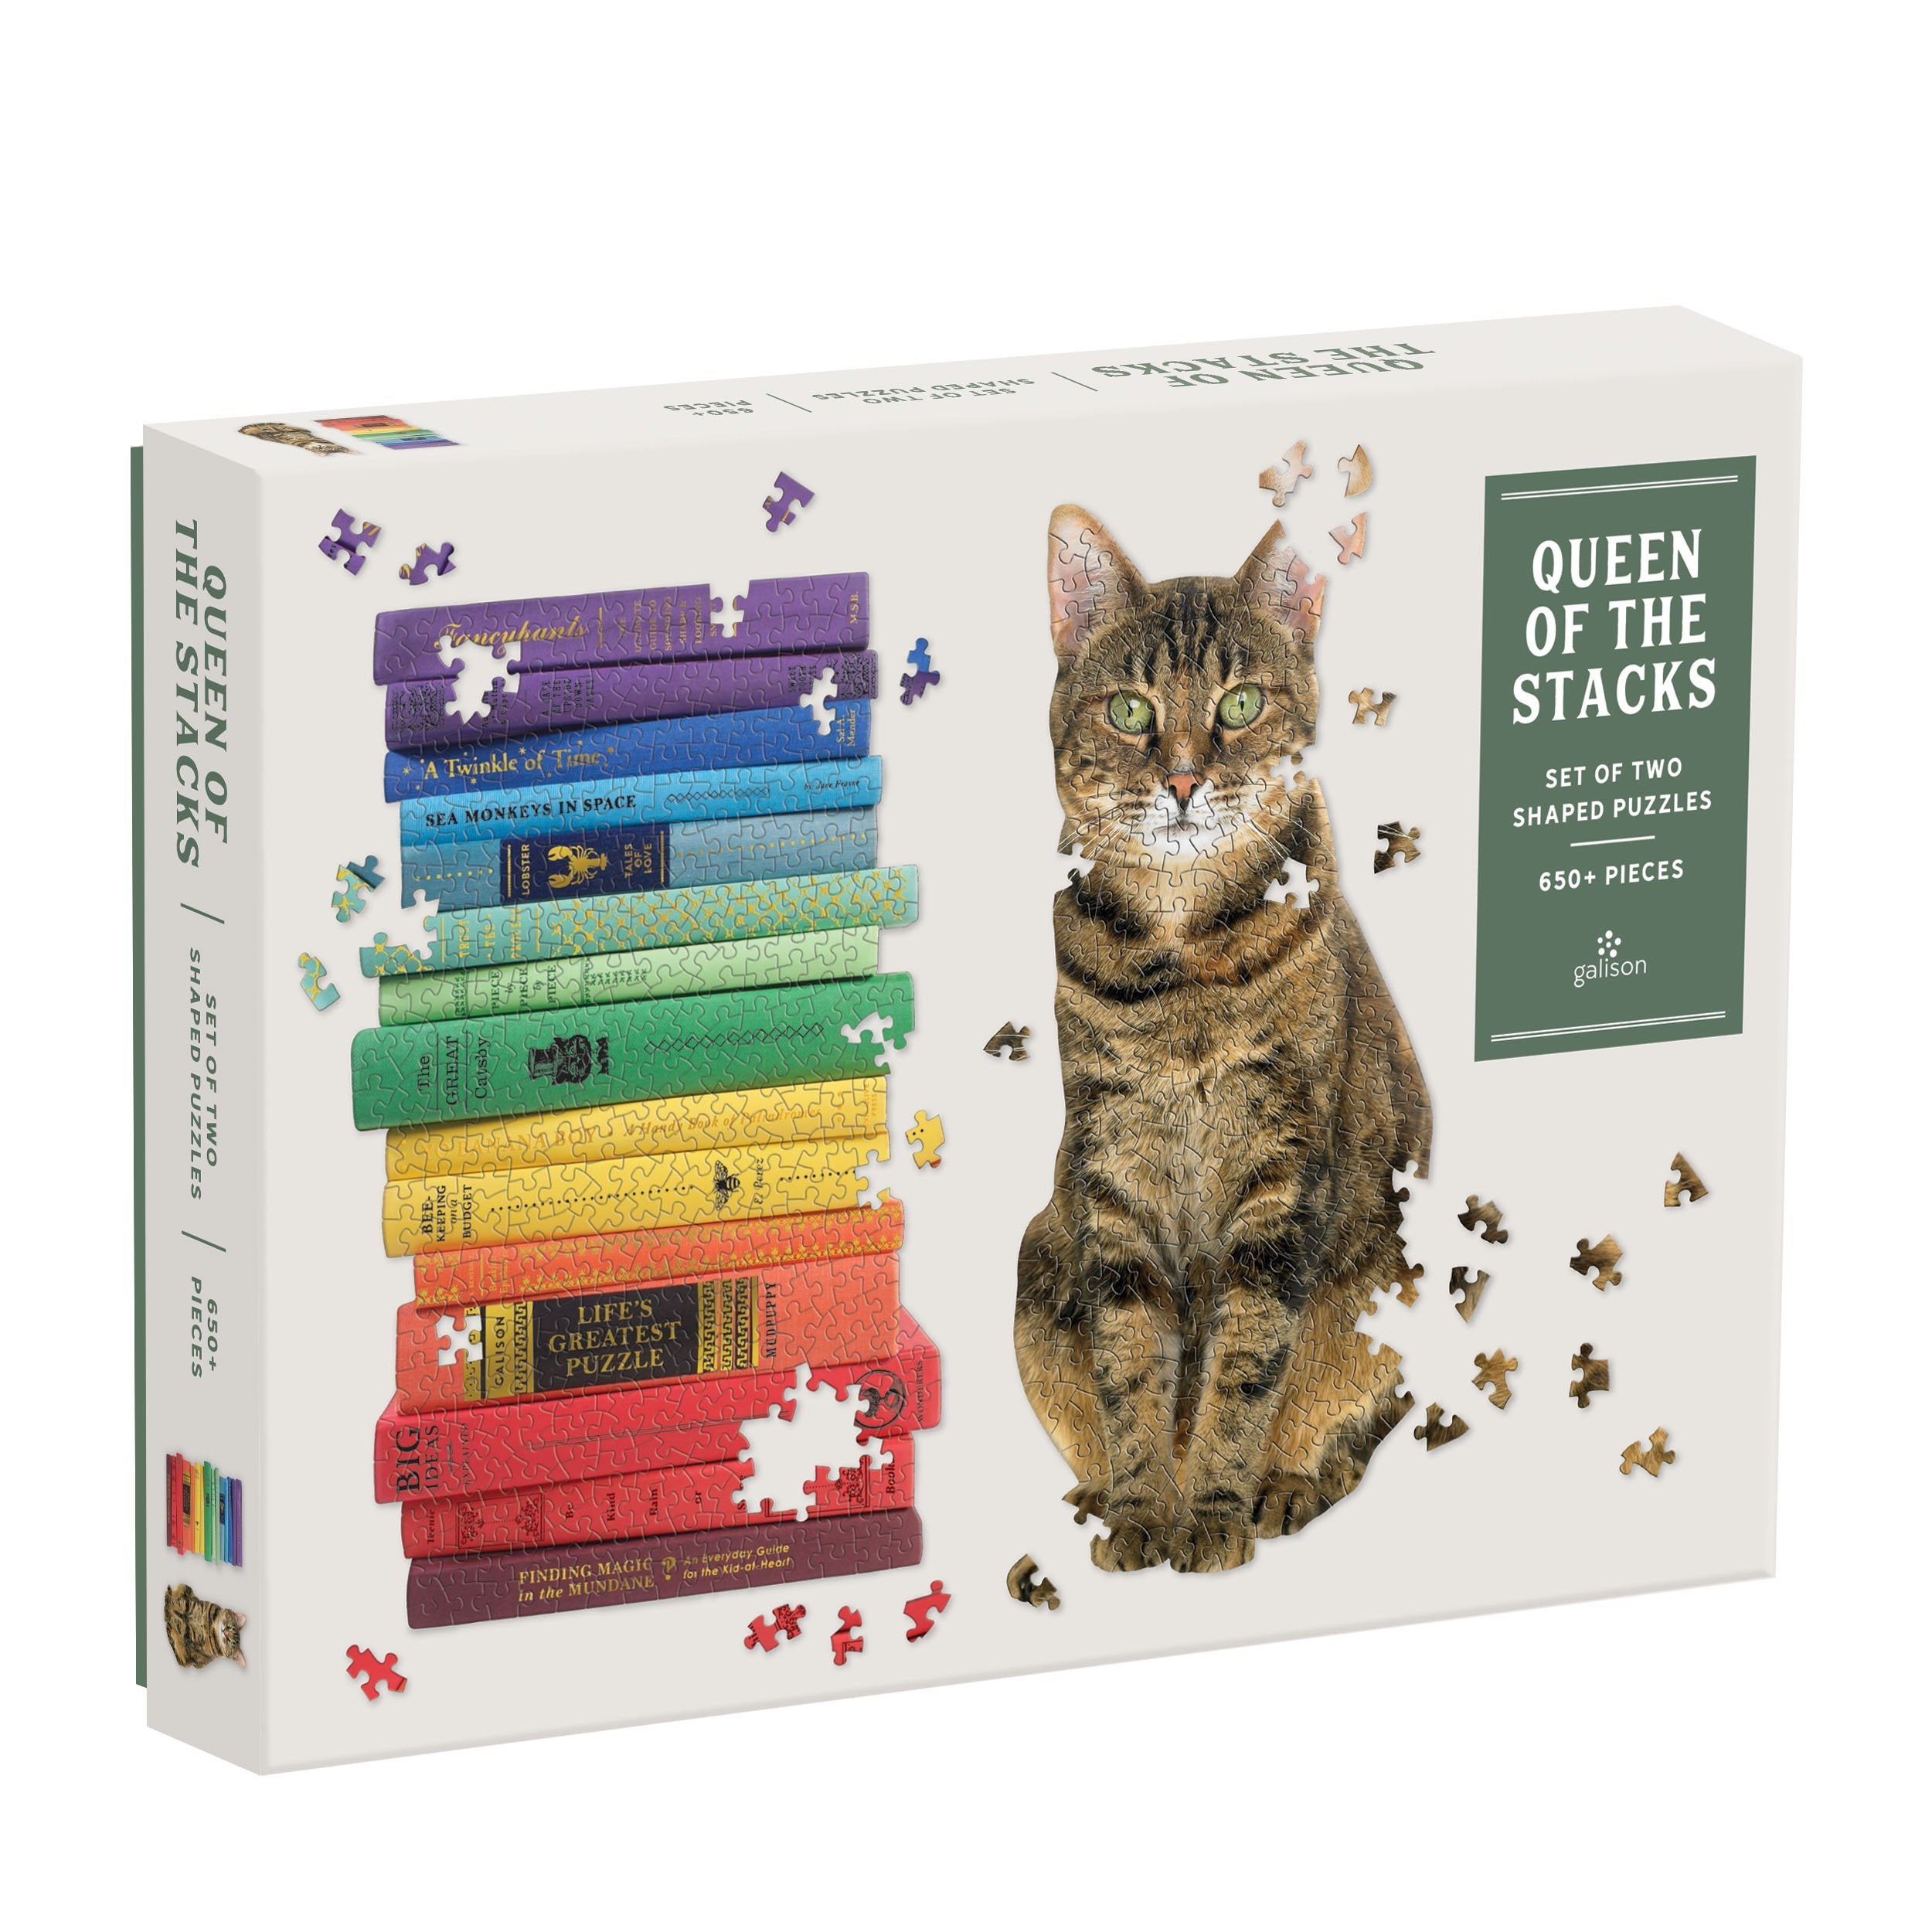 Queen of the Stacks Set of Two Puzzle Set Shaped Puzzles Galison